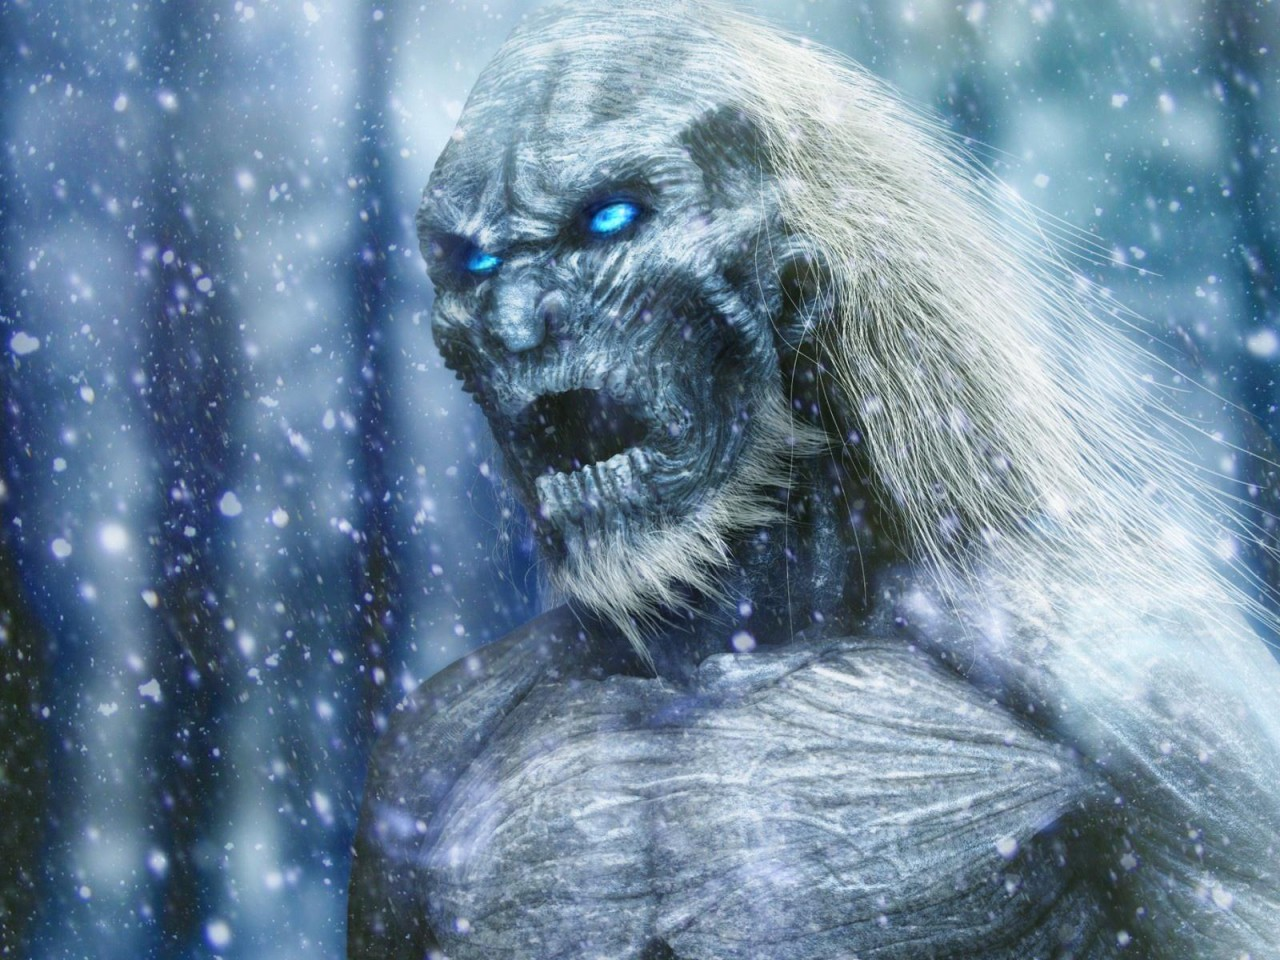 Resolution Of Hd Iphone Wallpaper: Game Of Thrones White Walkers Wallpaper